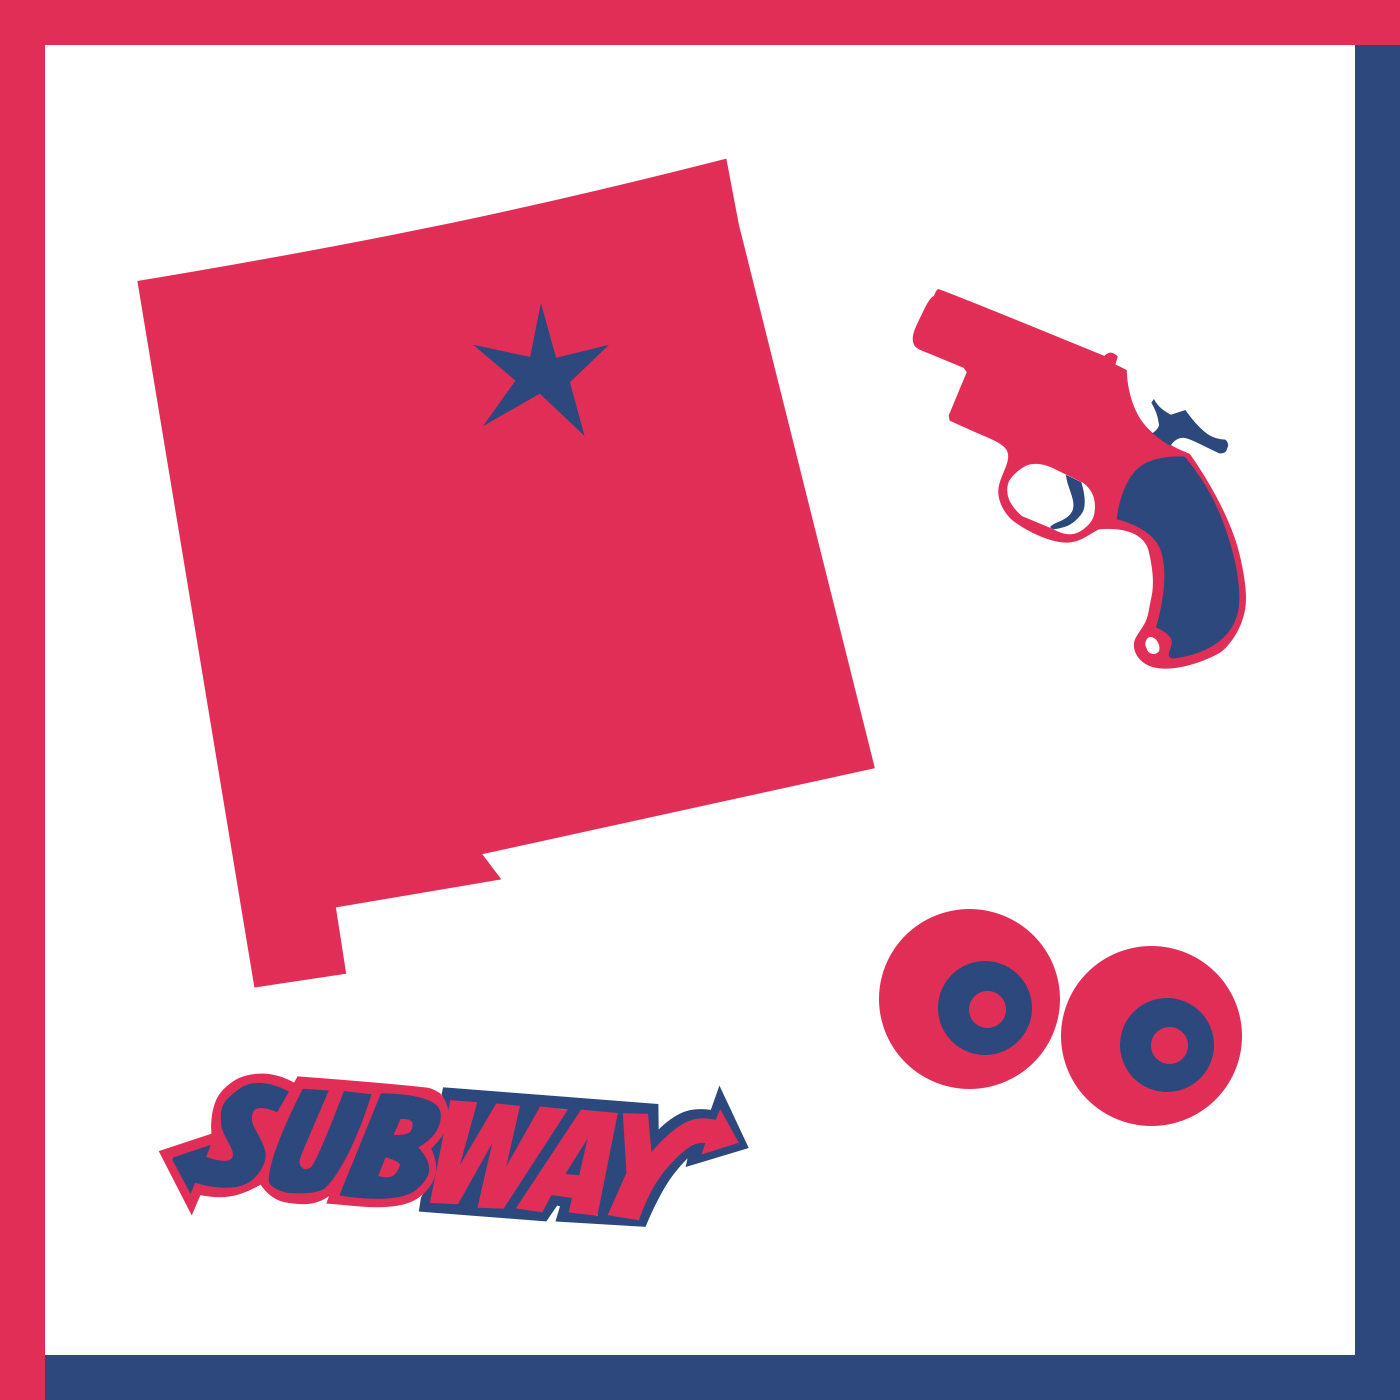 New Mexico (with Santa Fe marked), a flare gun, human eyes, and the Subway logo.